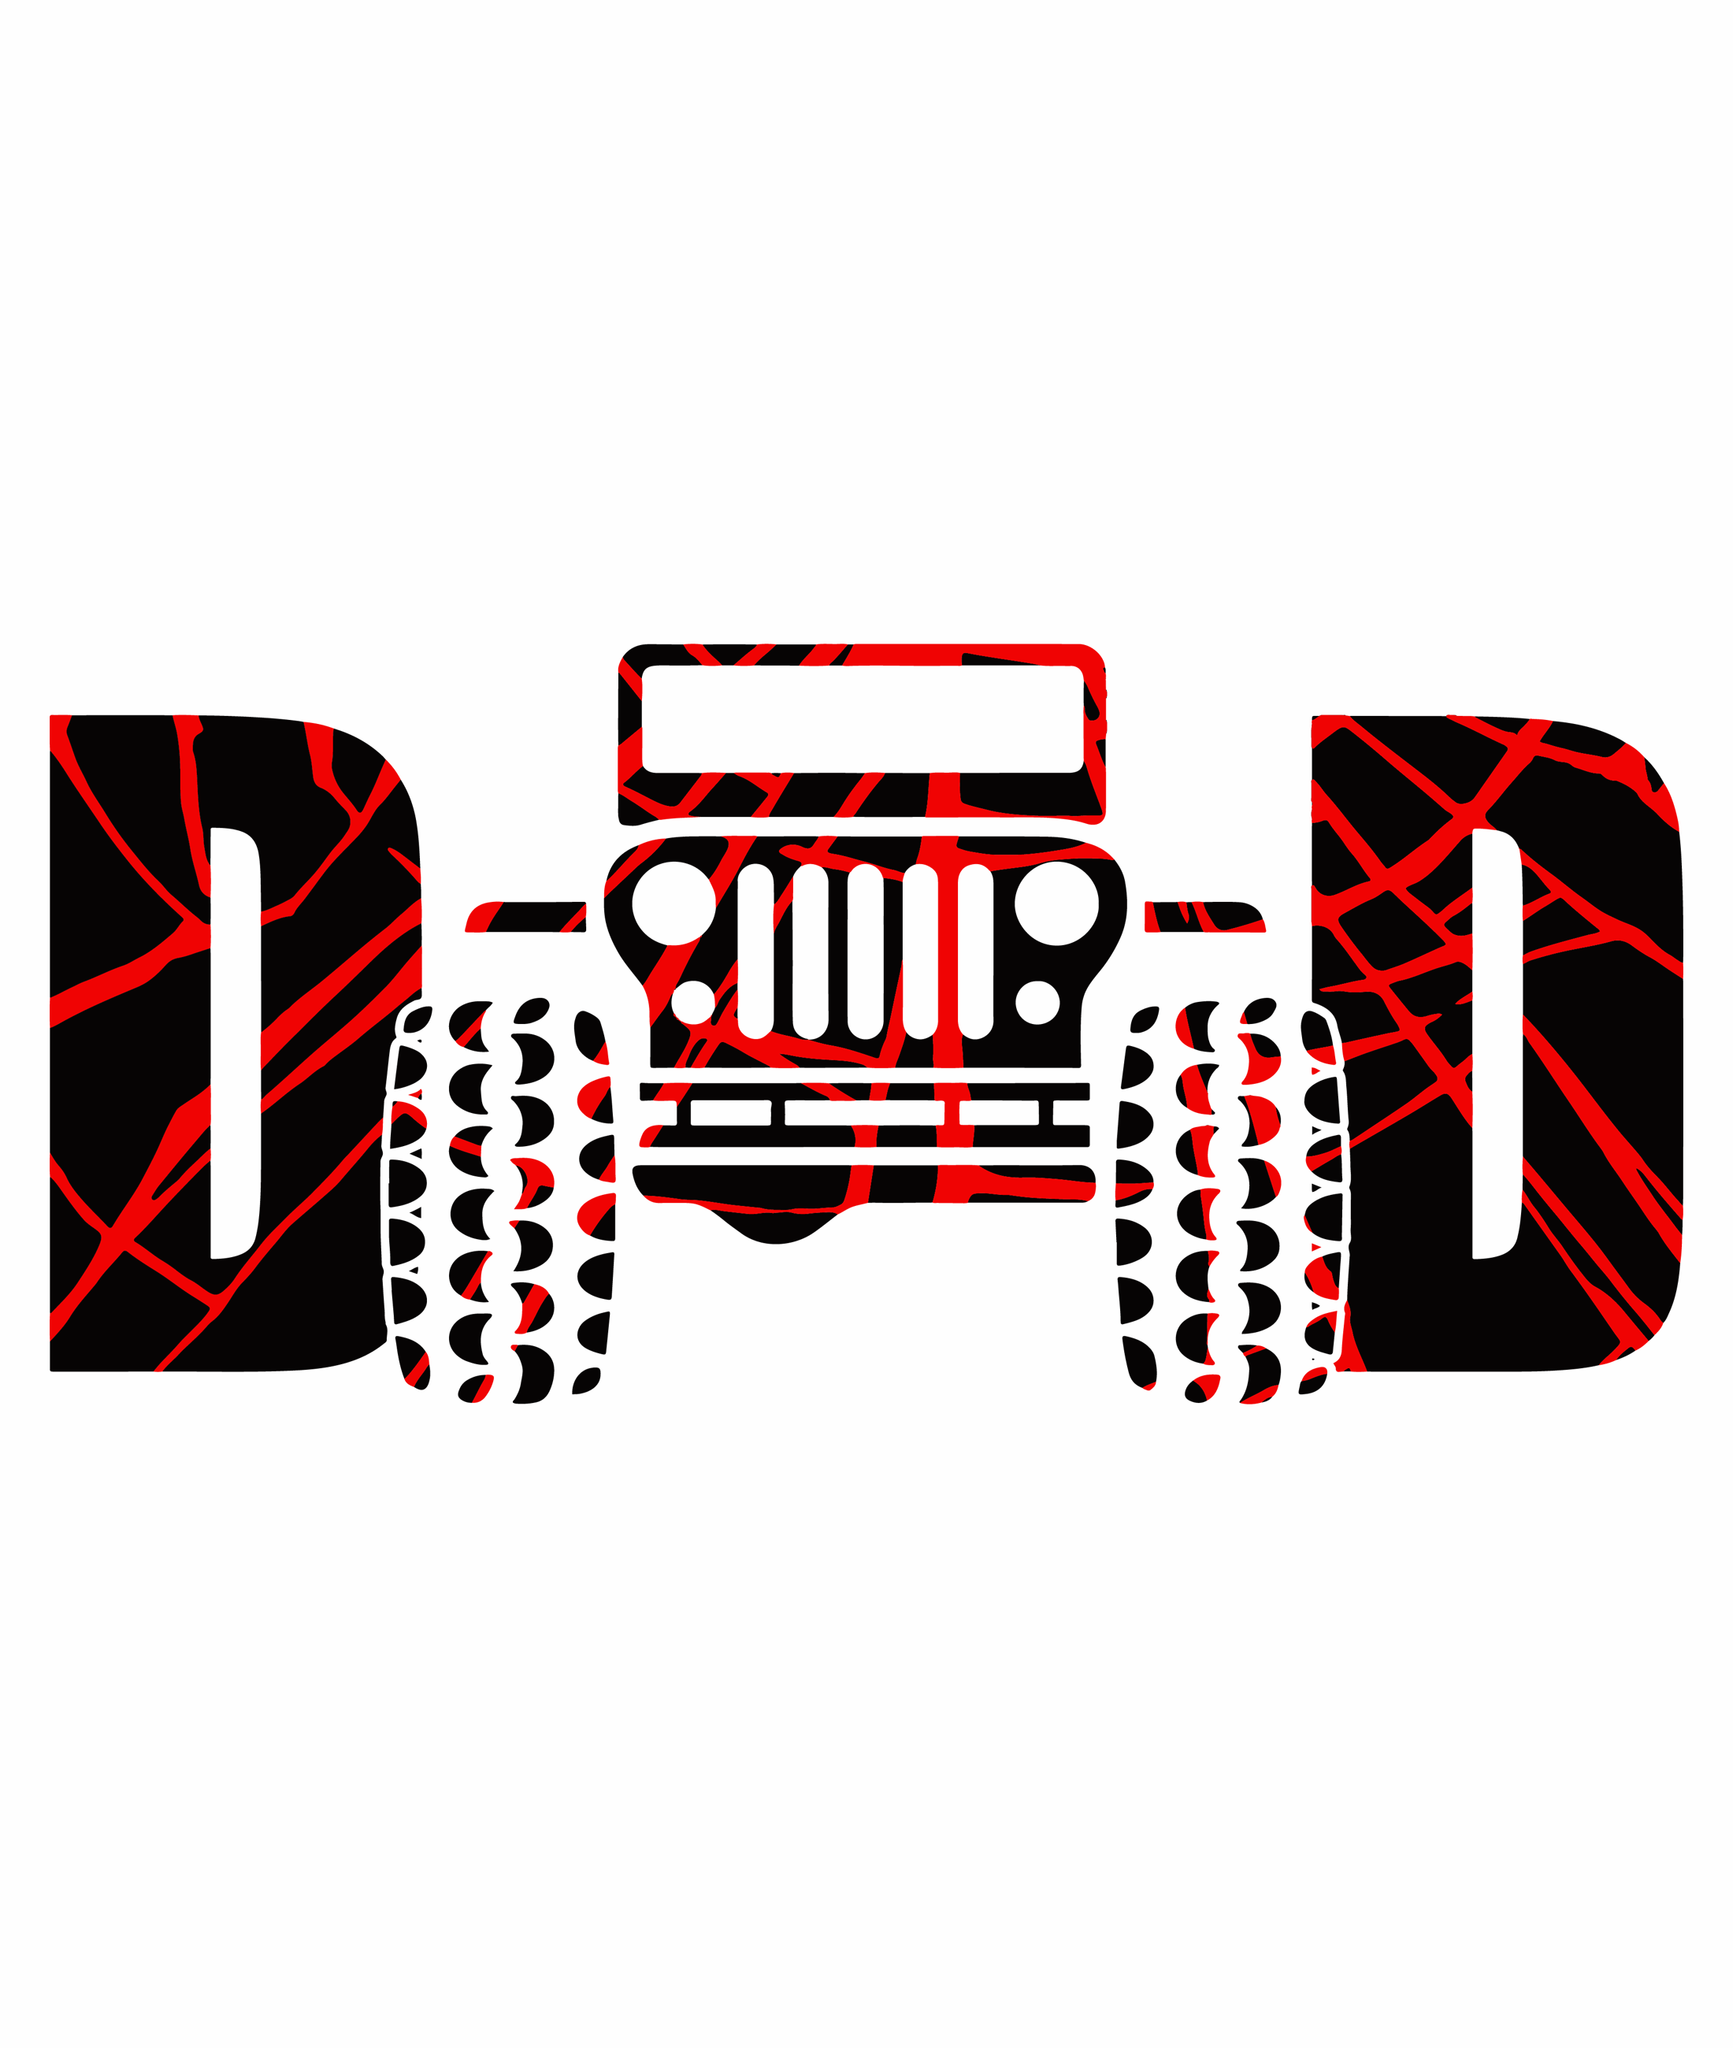 Dad truck svg, dad truck, dad truck png, Father's day vector, svg, png, dxf, eps file